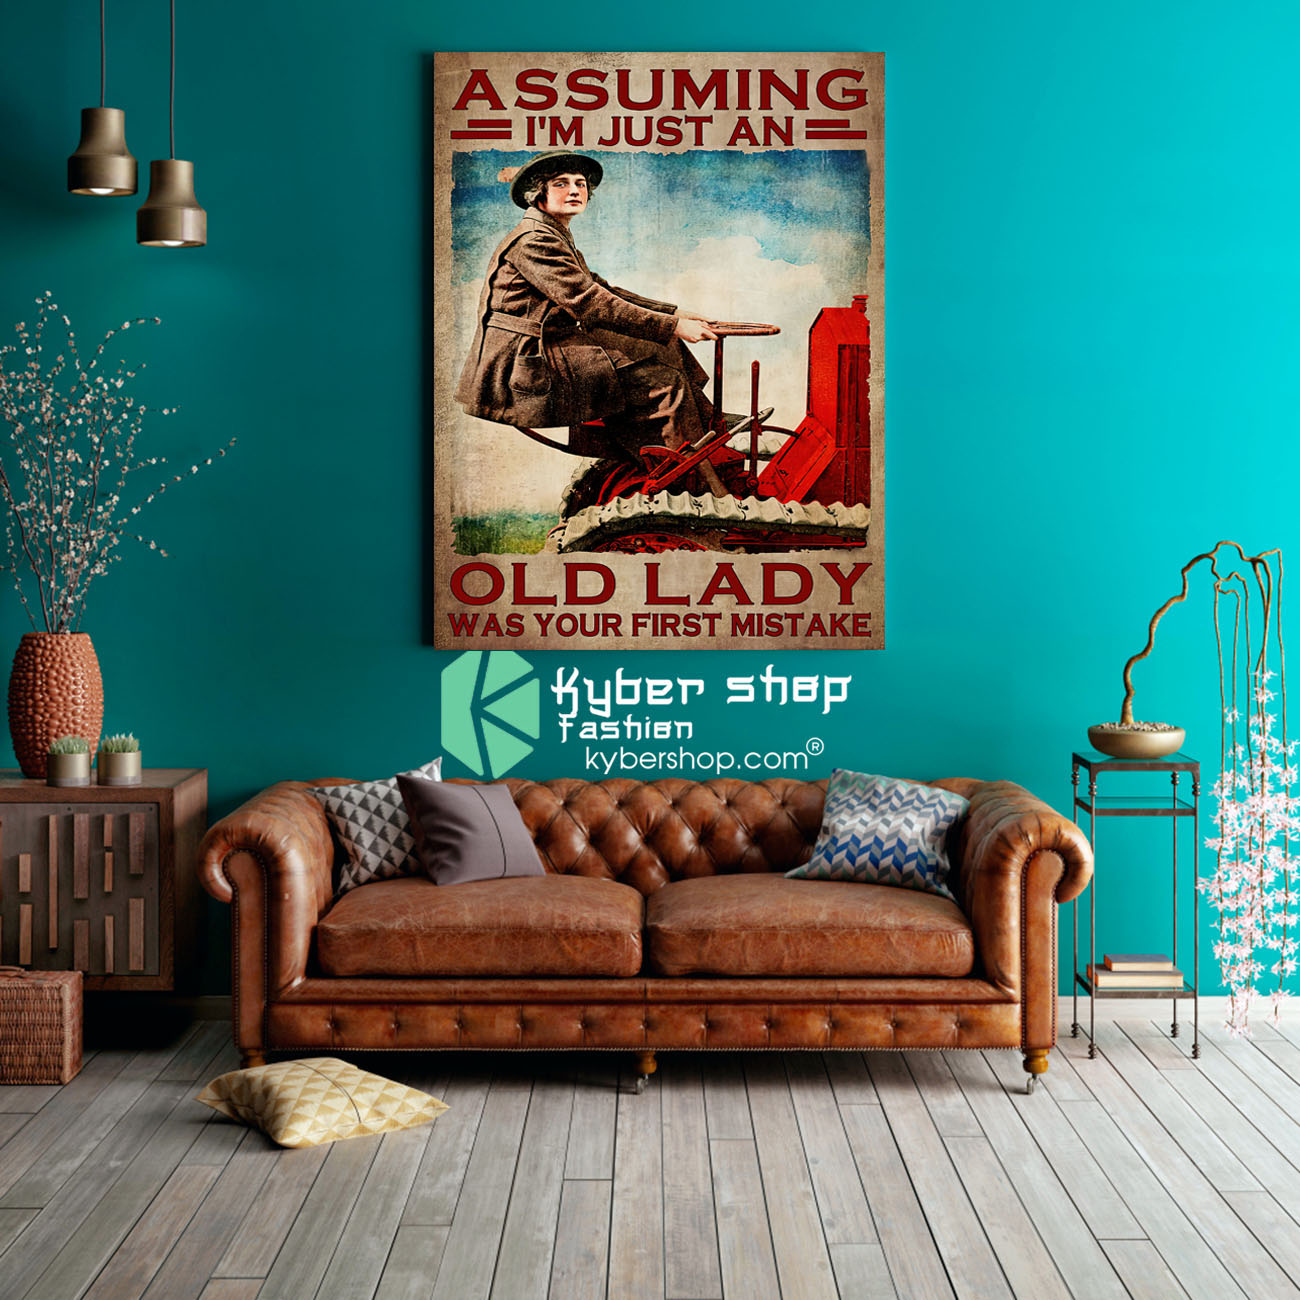 Assuming Im just an old lady was your first mistake poster 3